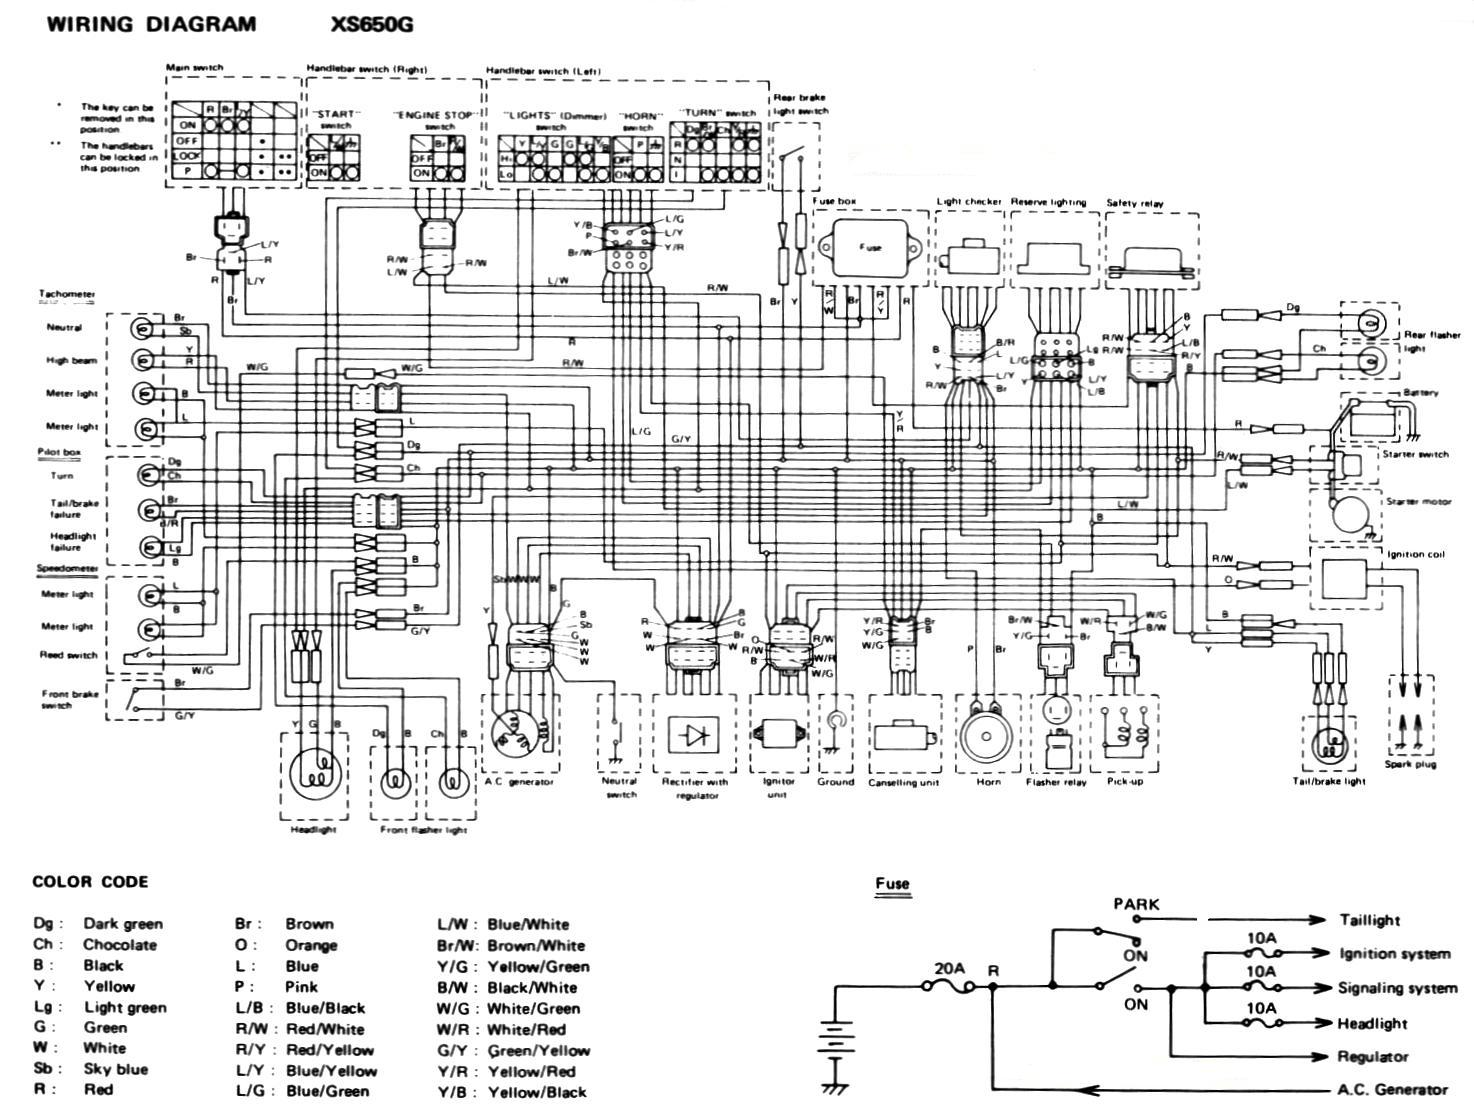 Xs750 Wiring Diagram from www.oregonmotorcycleparts.com